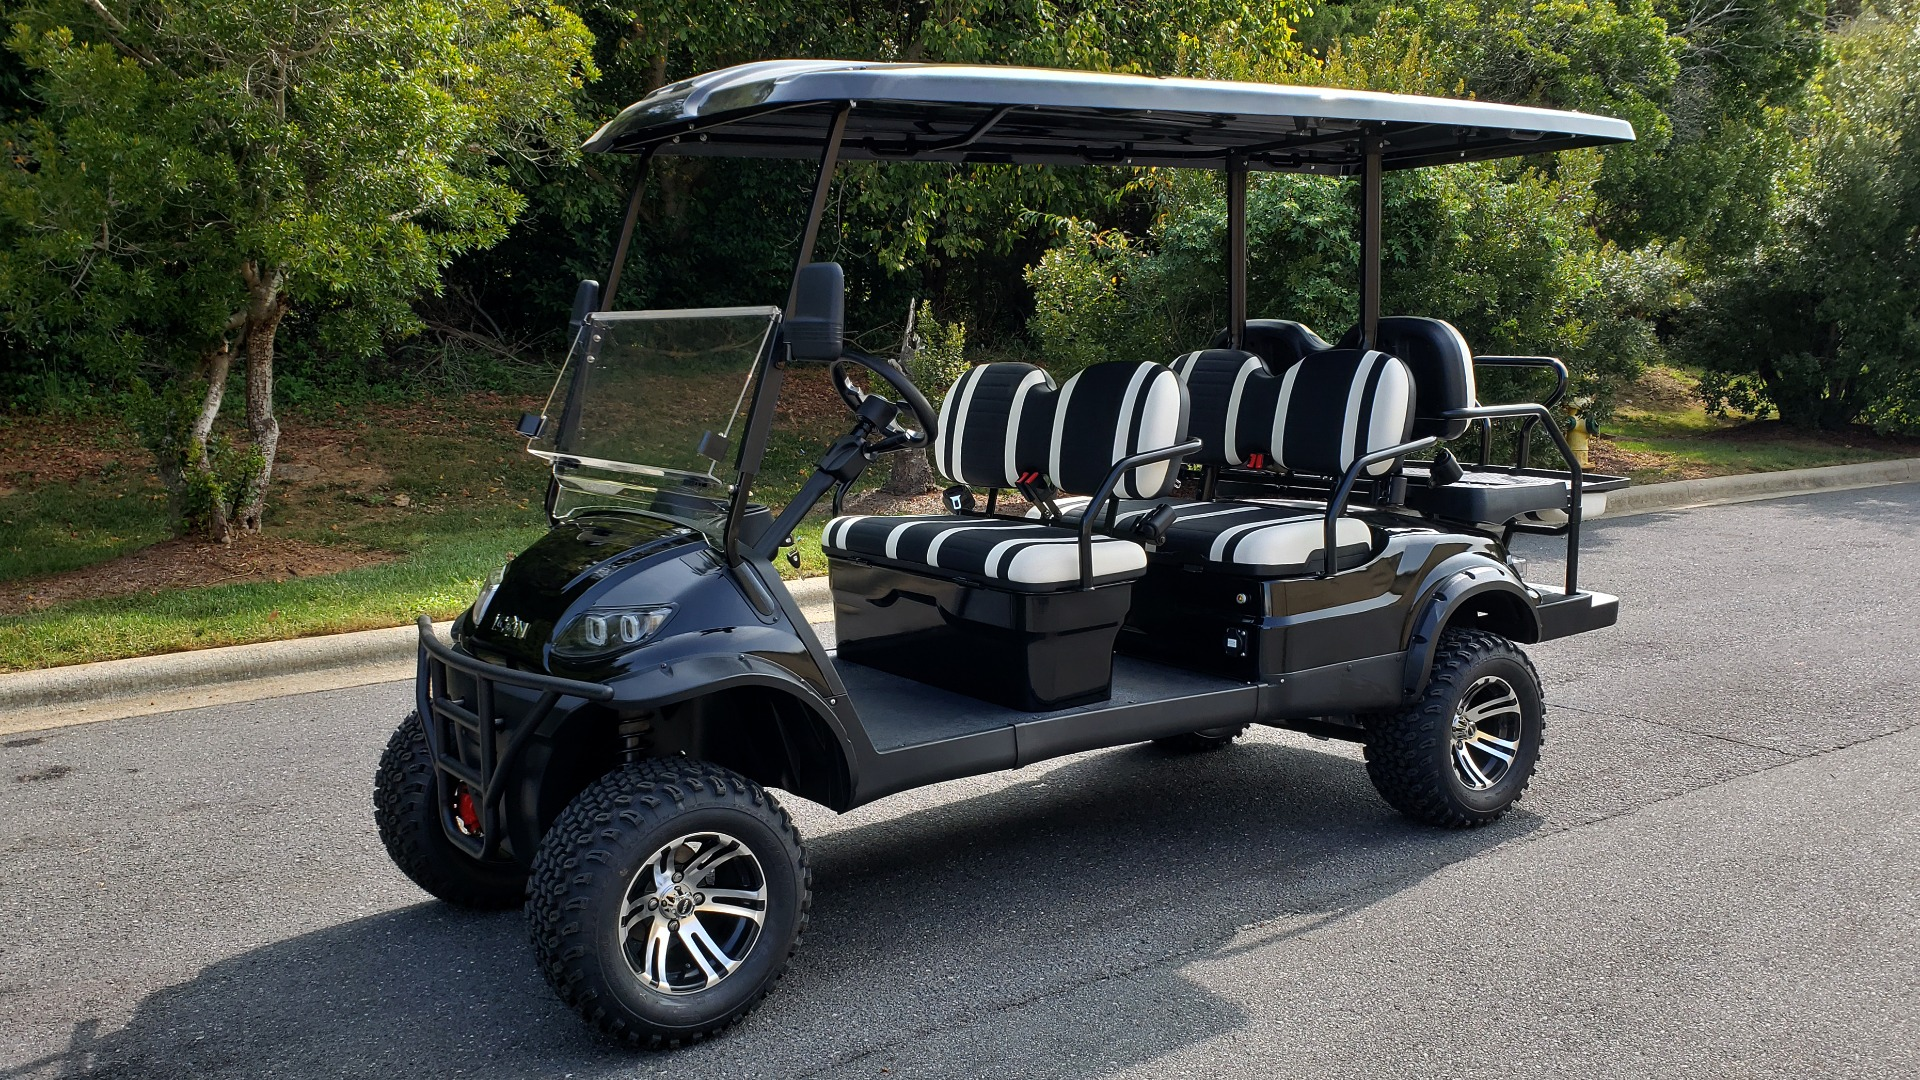 Used 2020 ICON I60L ELECTRIC CAR 3-ROW/6-PASSENGER/LIFTED for sale $10,995 at Formula Imports in Charlotte NC 28227 1